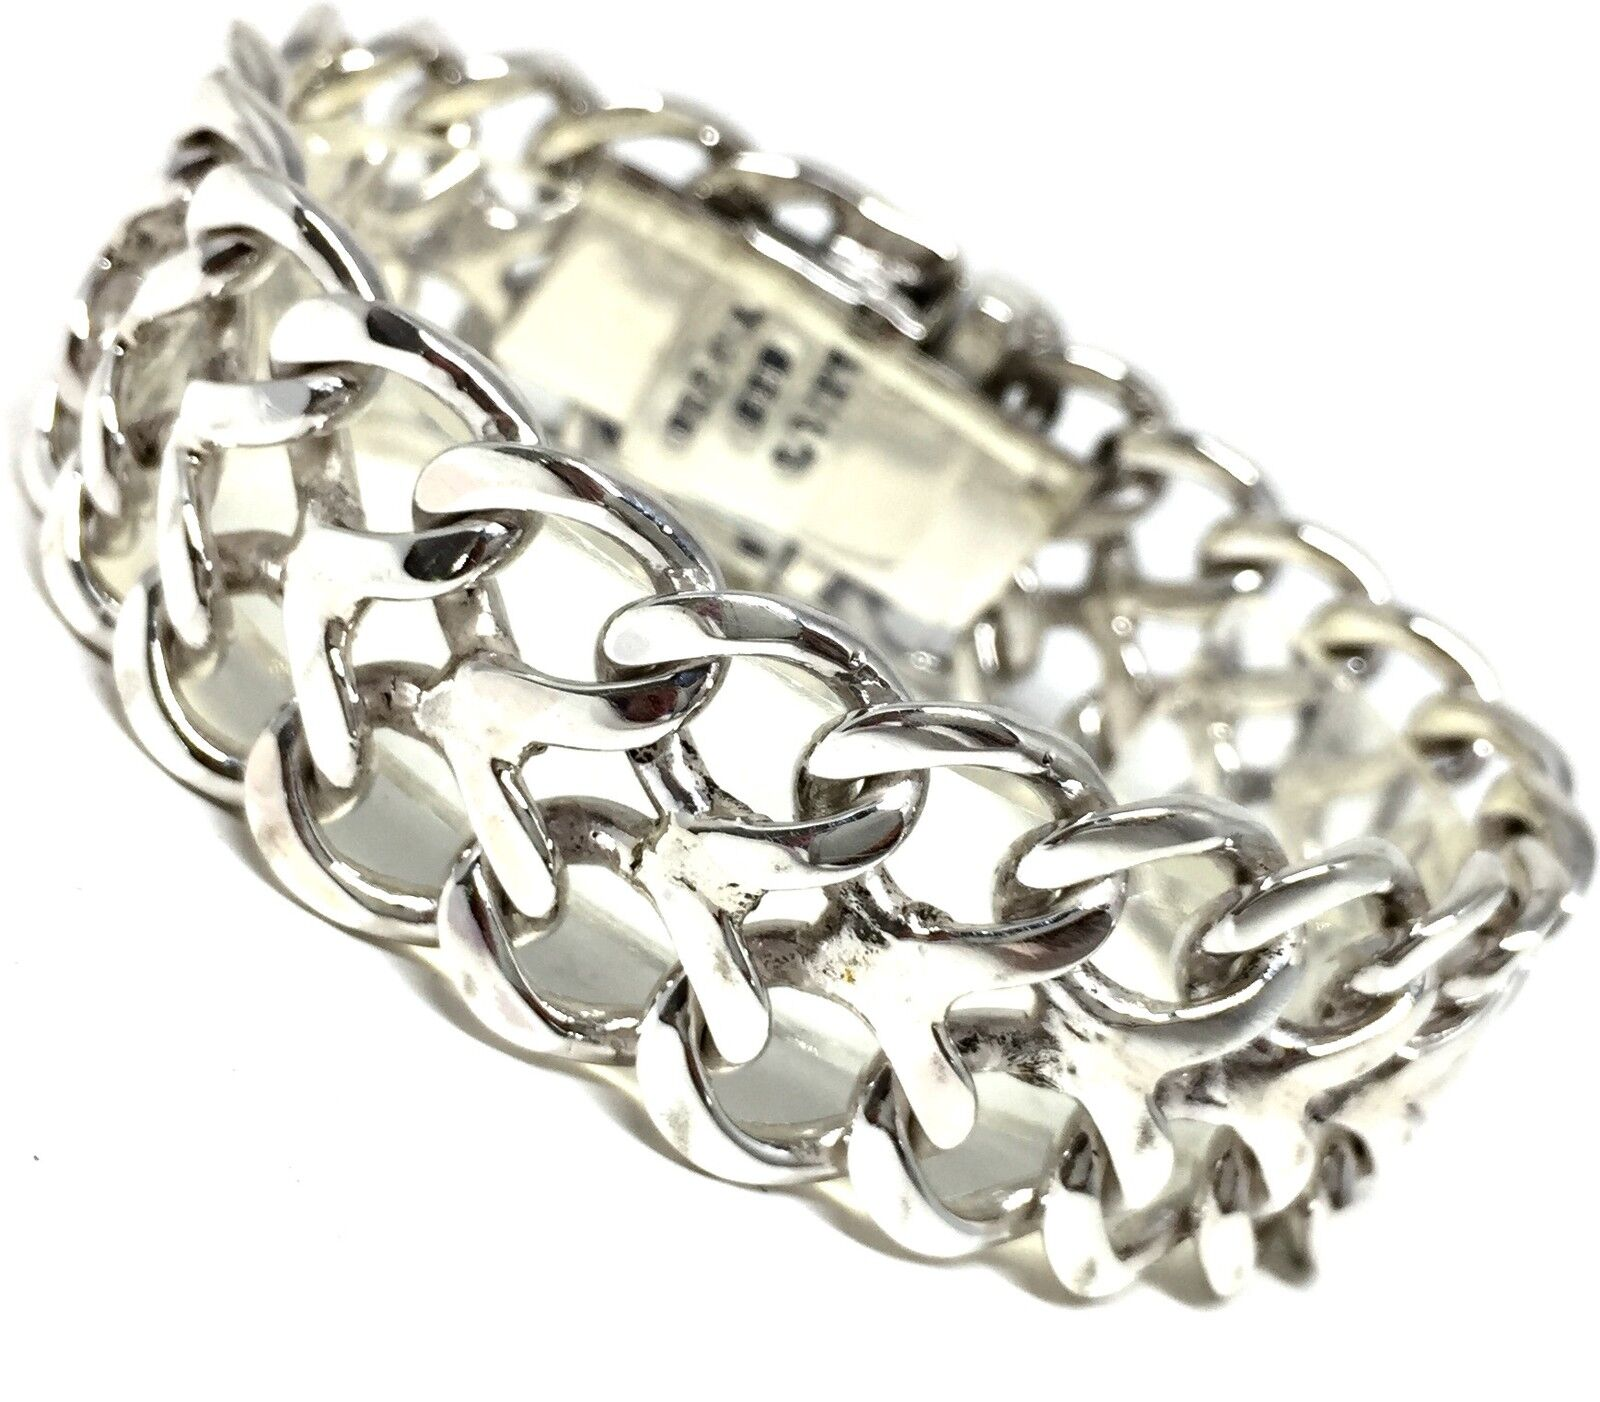 Silver Chain Link Bracelet: TAXCO MEXICAN 925 STERLING SILVER CHAIN LINK BRACELET